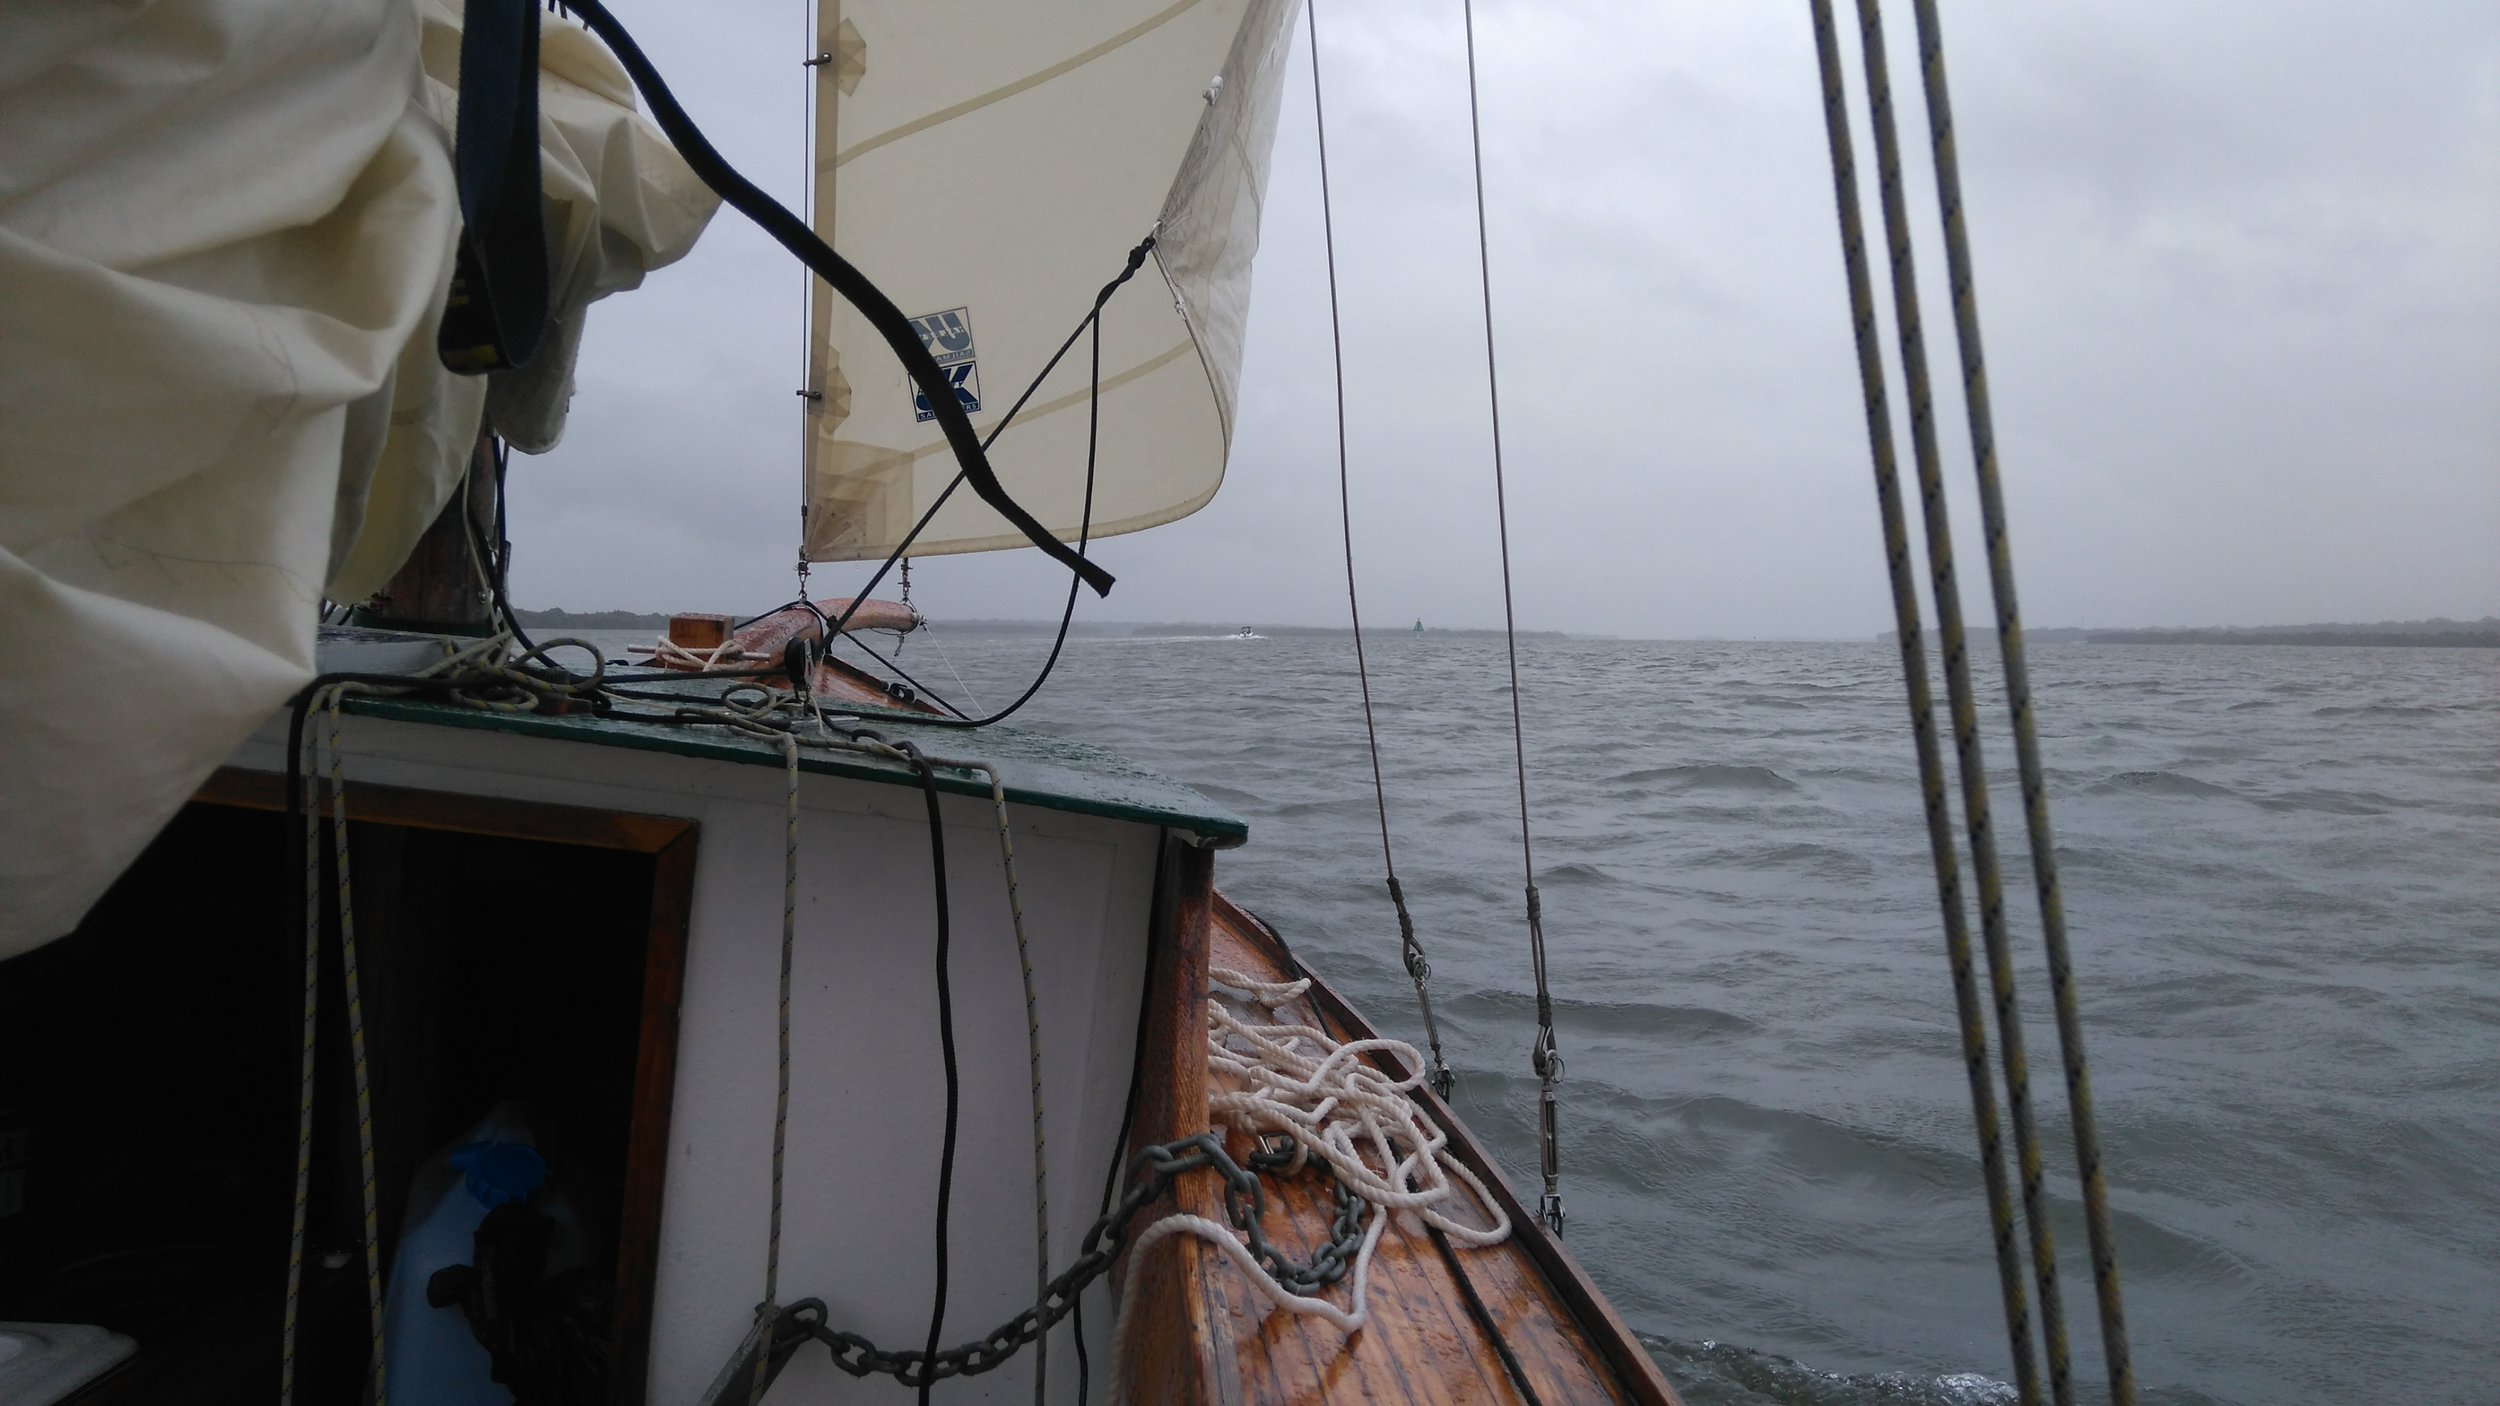 I sailed on under just a headsa'l, the southerly building throughout the day, until I'd turned the corner and could take shelter on the windward shore.